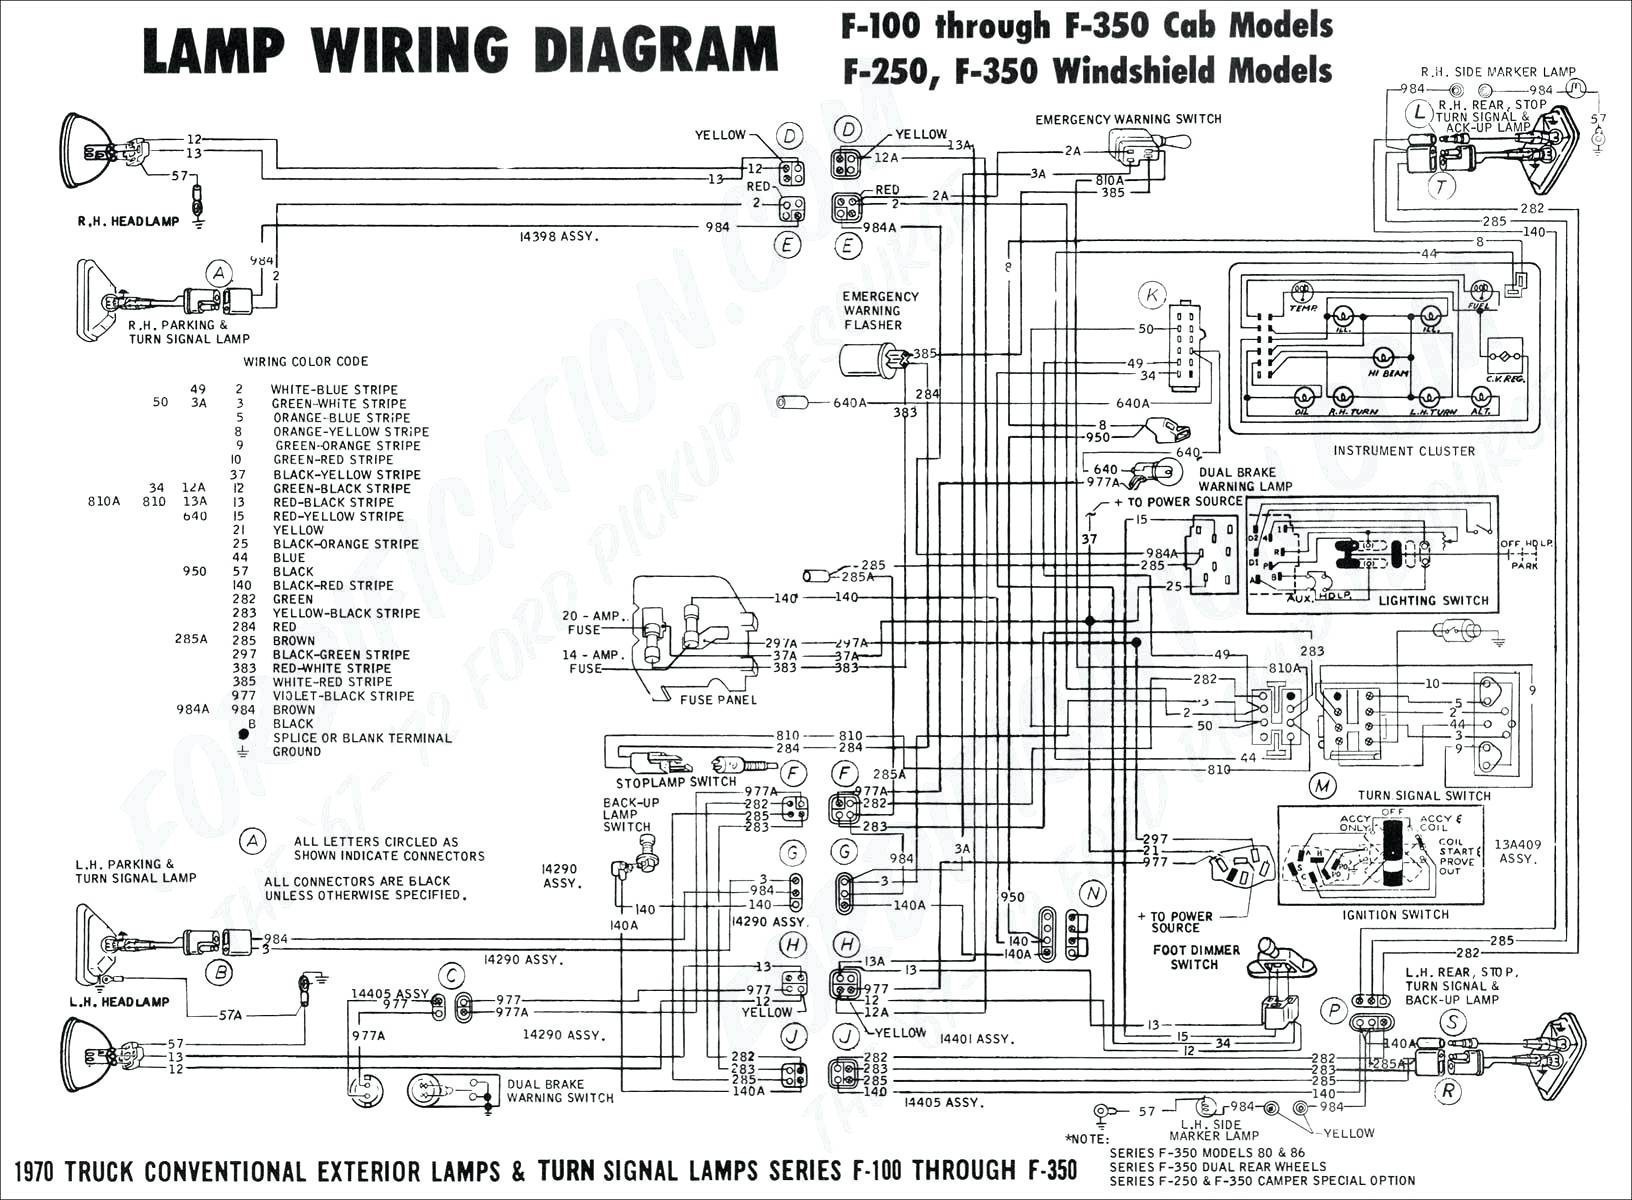 2003 Dodge Ram Wiring Diagram 2003 Dodge Ram 1500 Ignition Wiring Diagram Save 1996 Dodge Ram 1500 Of 2003 Dodge Ram Wiring Diagram